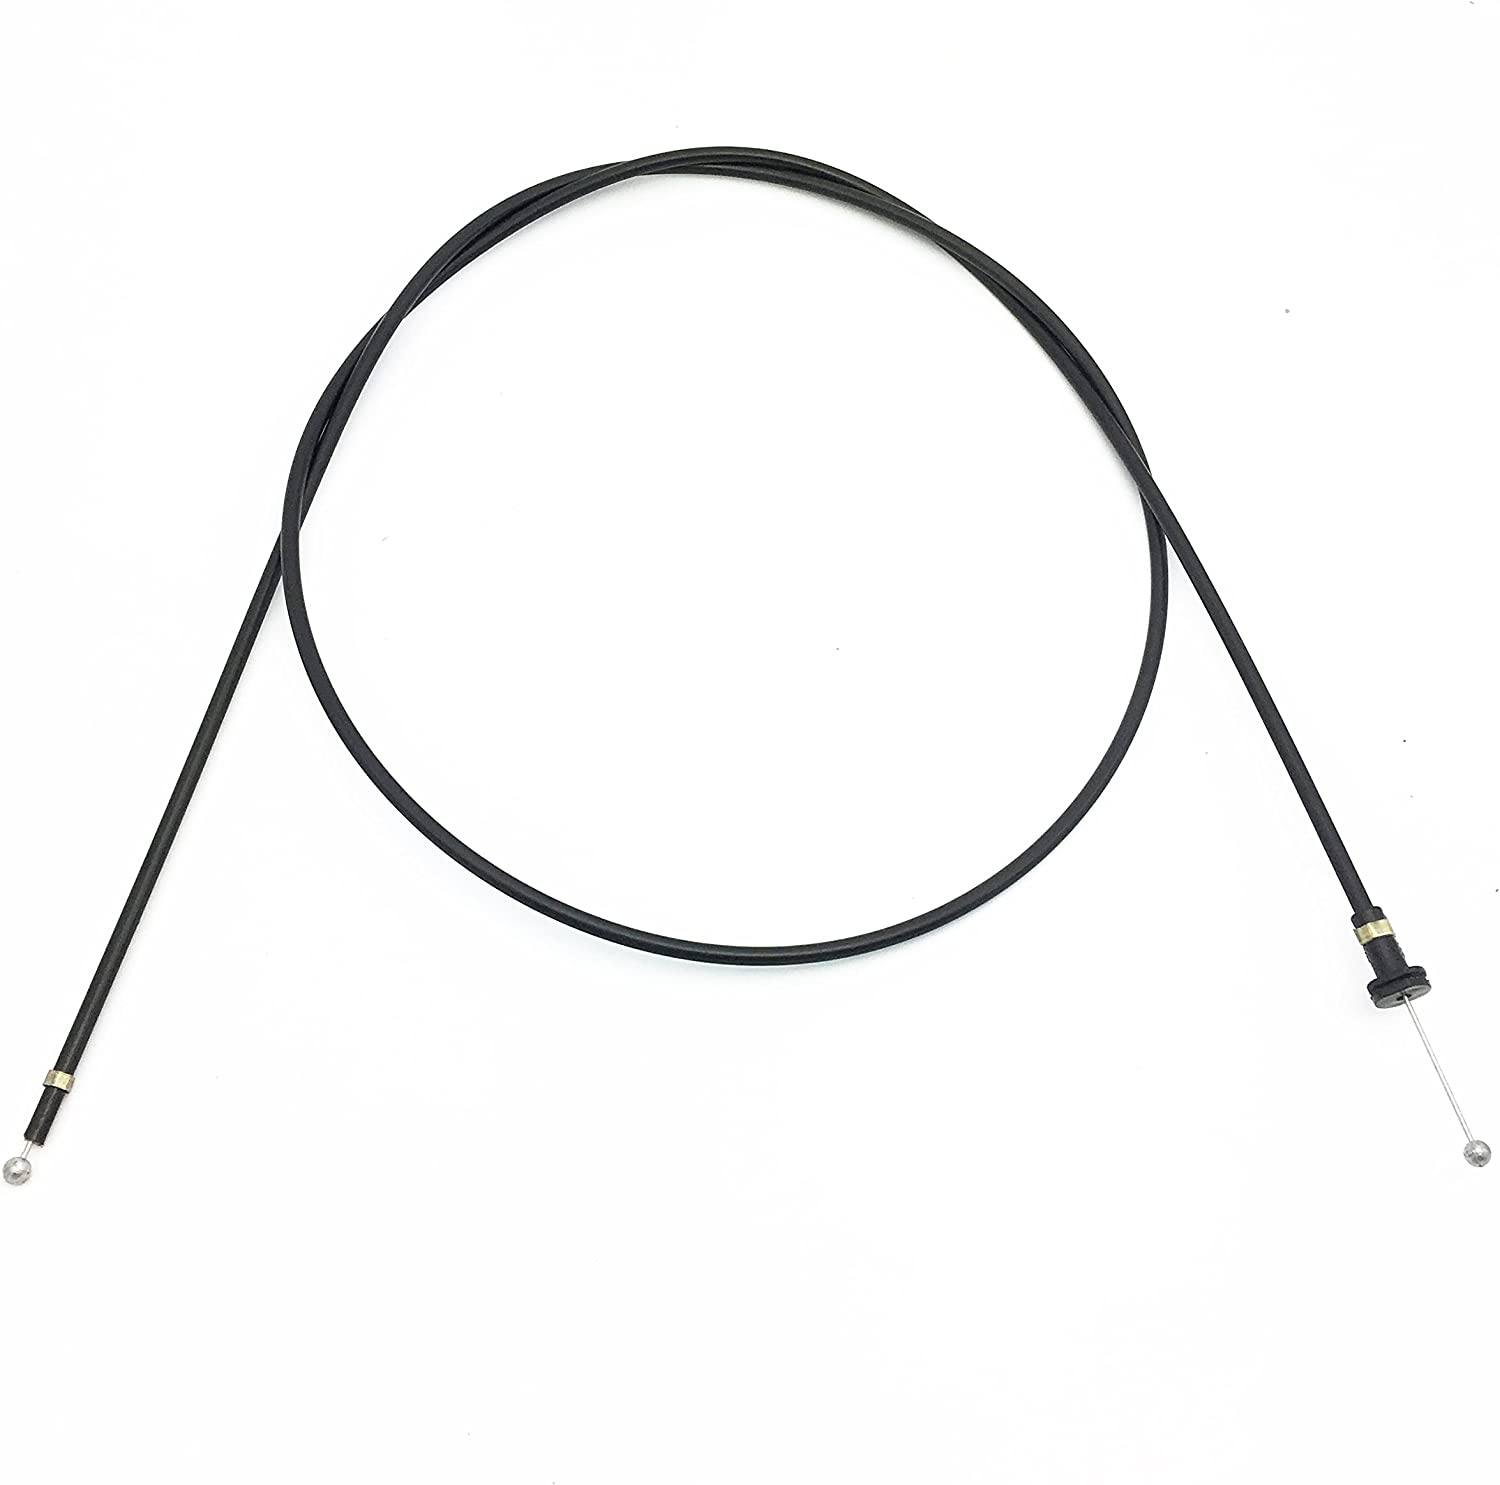 For Chevy Blazer GMC Jimmy Sonoma Hood Release Cable w// Handle Dorman 912-001